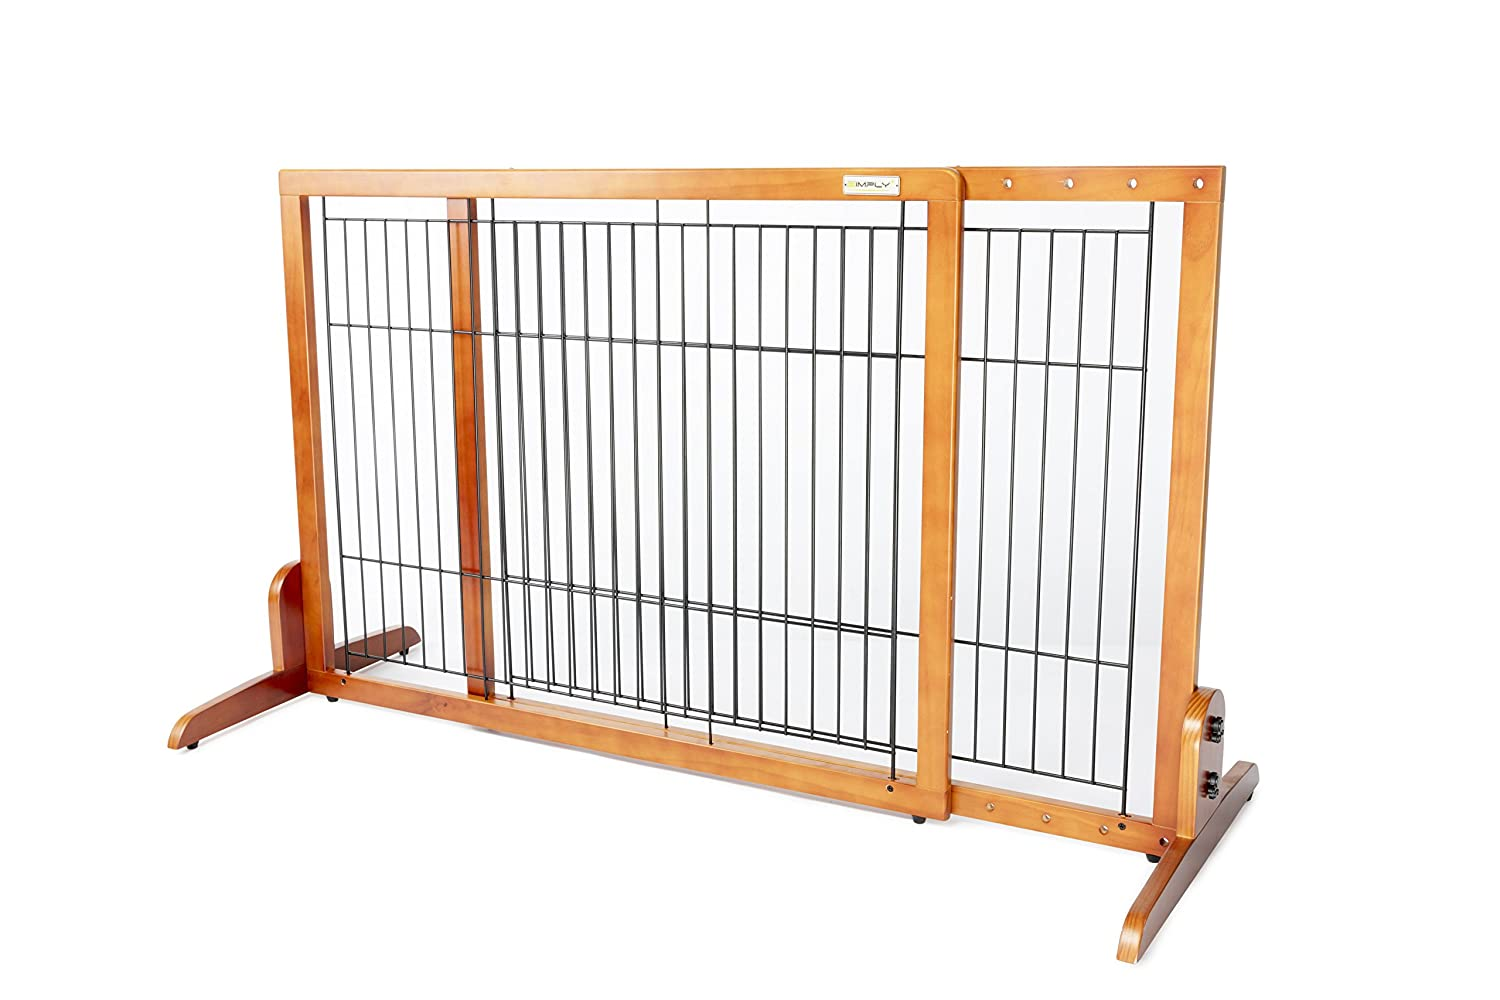 Simply Plus Wooden Pet Gate No Door, Freestanding Pet Dog Gate